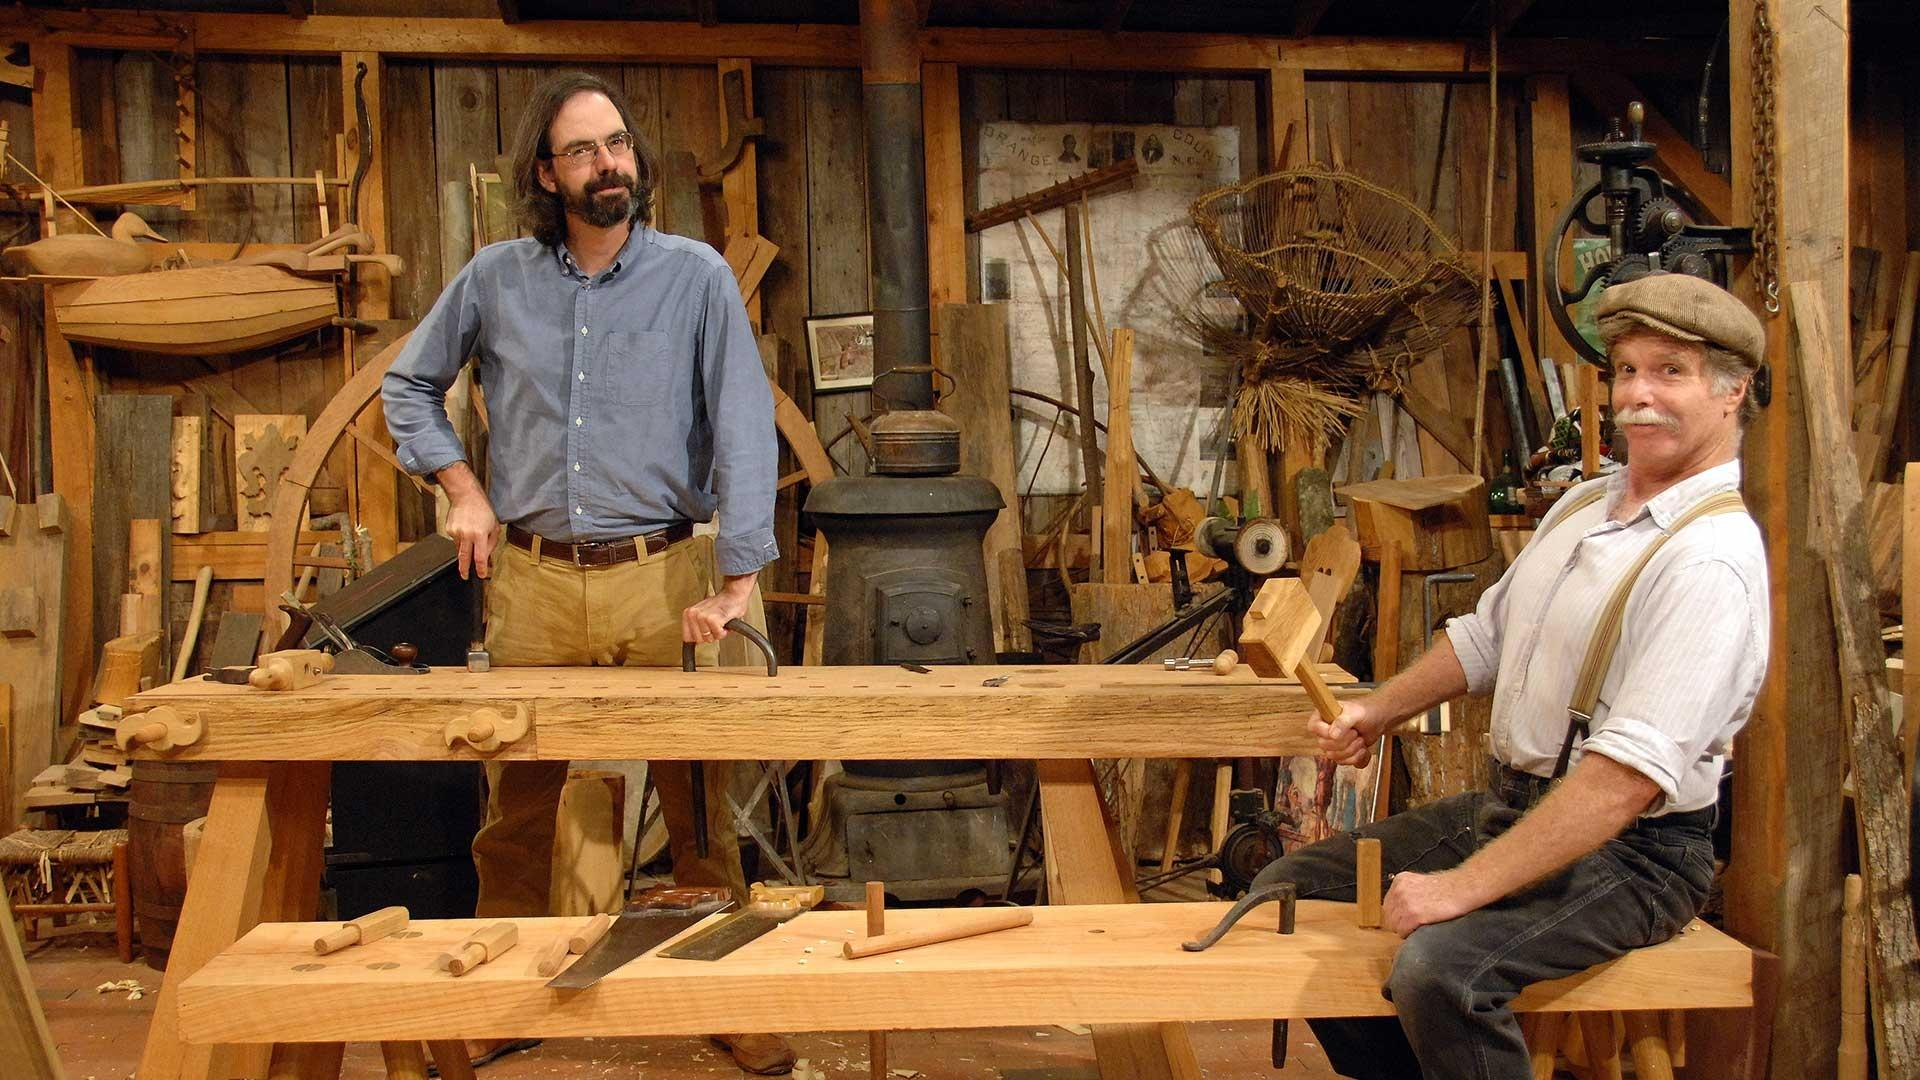 Video: S36 Ep10: Roman Work Bench | Watch The Woodwright's ...